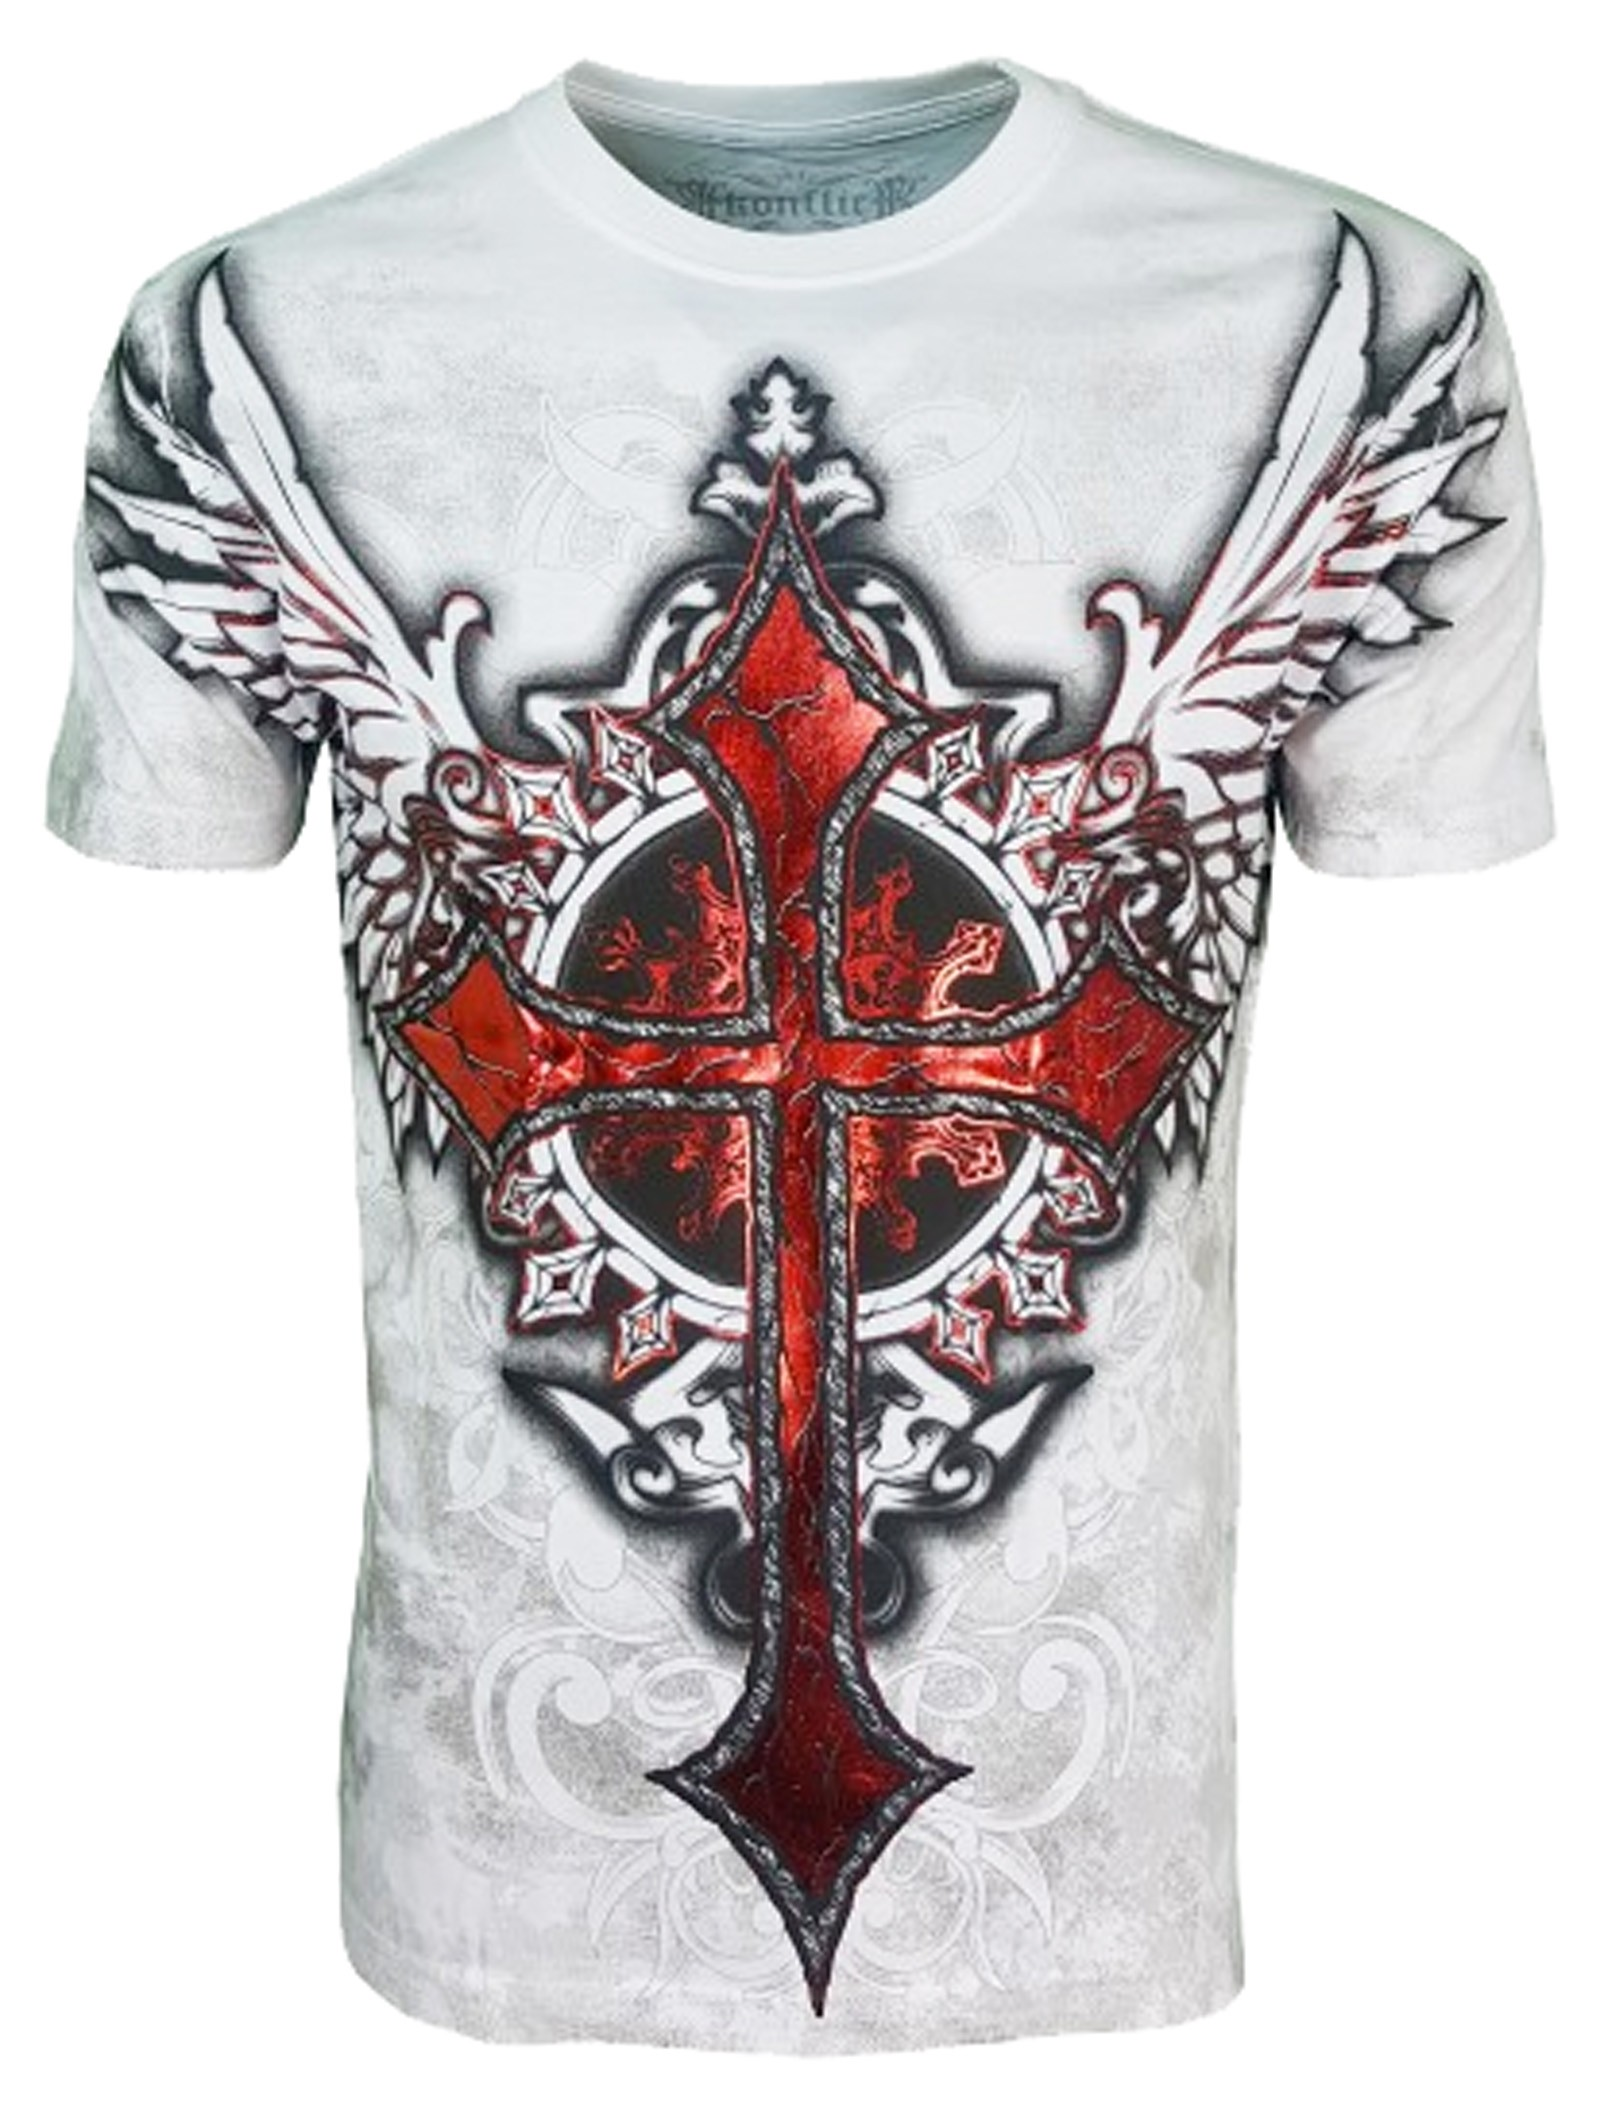 Konflic Clothing - Winged Cross T-Shirt